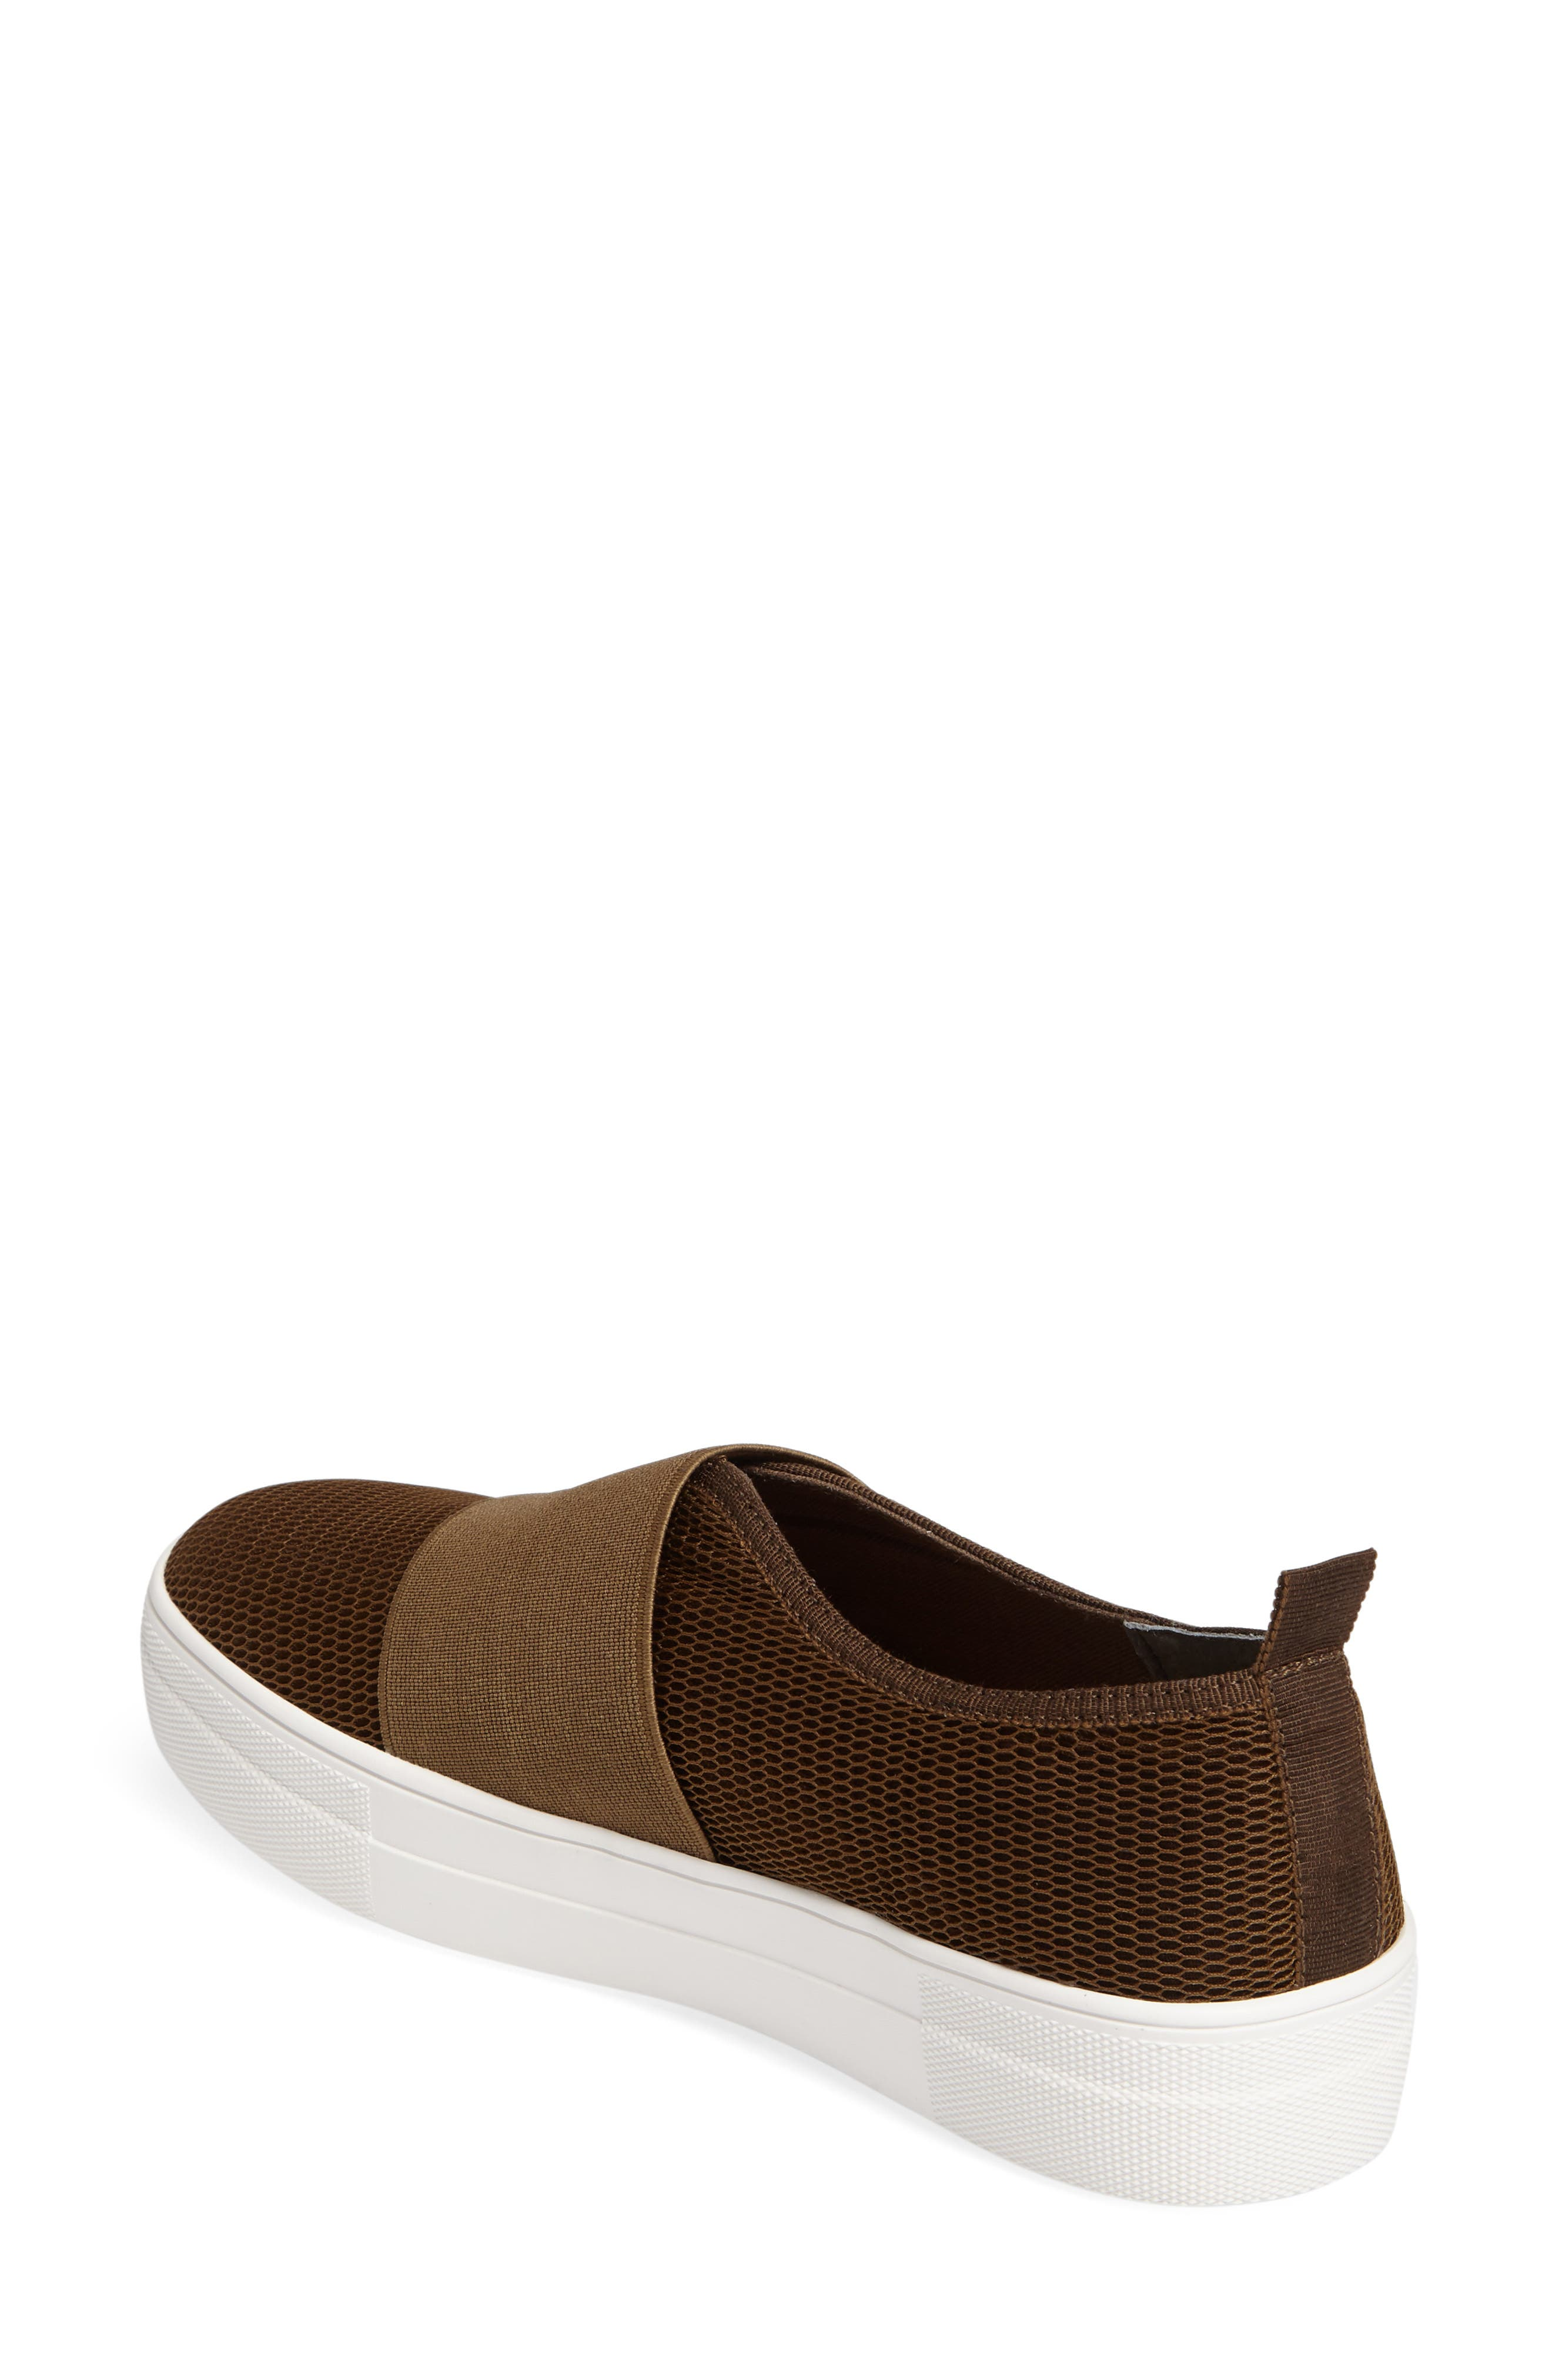 Alternate Image 2  - Steve Madden Glenn Slip-On Platform Sneaker (Women)